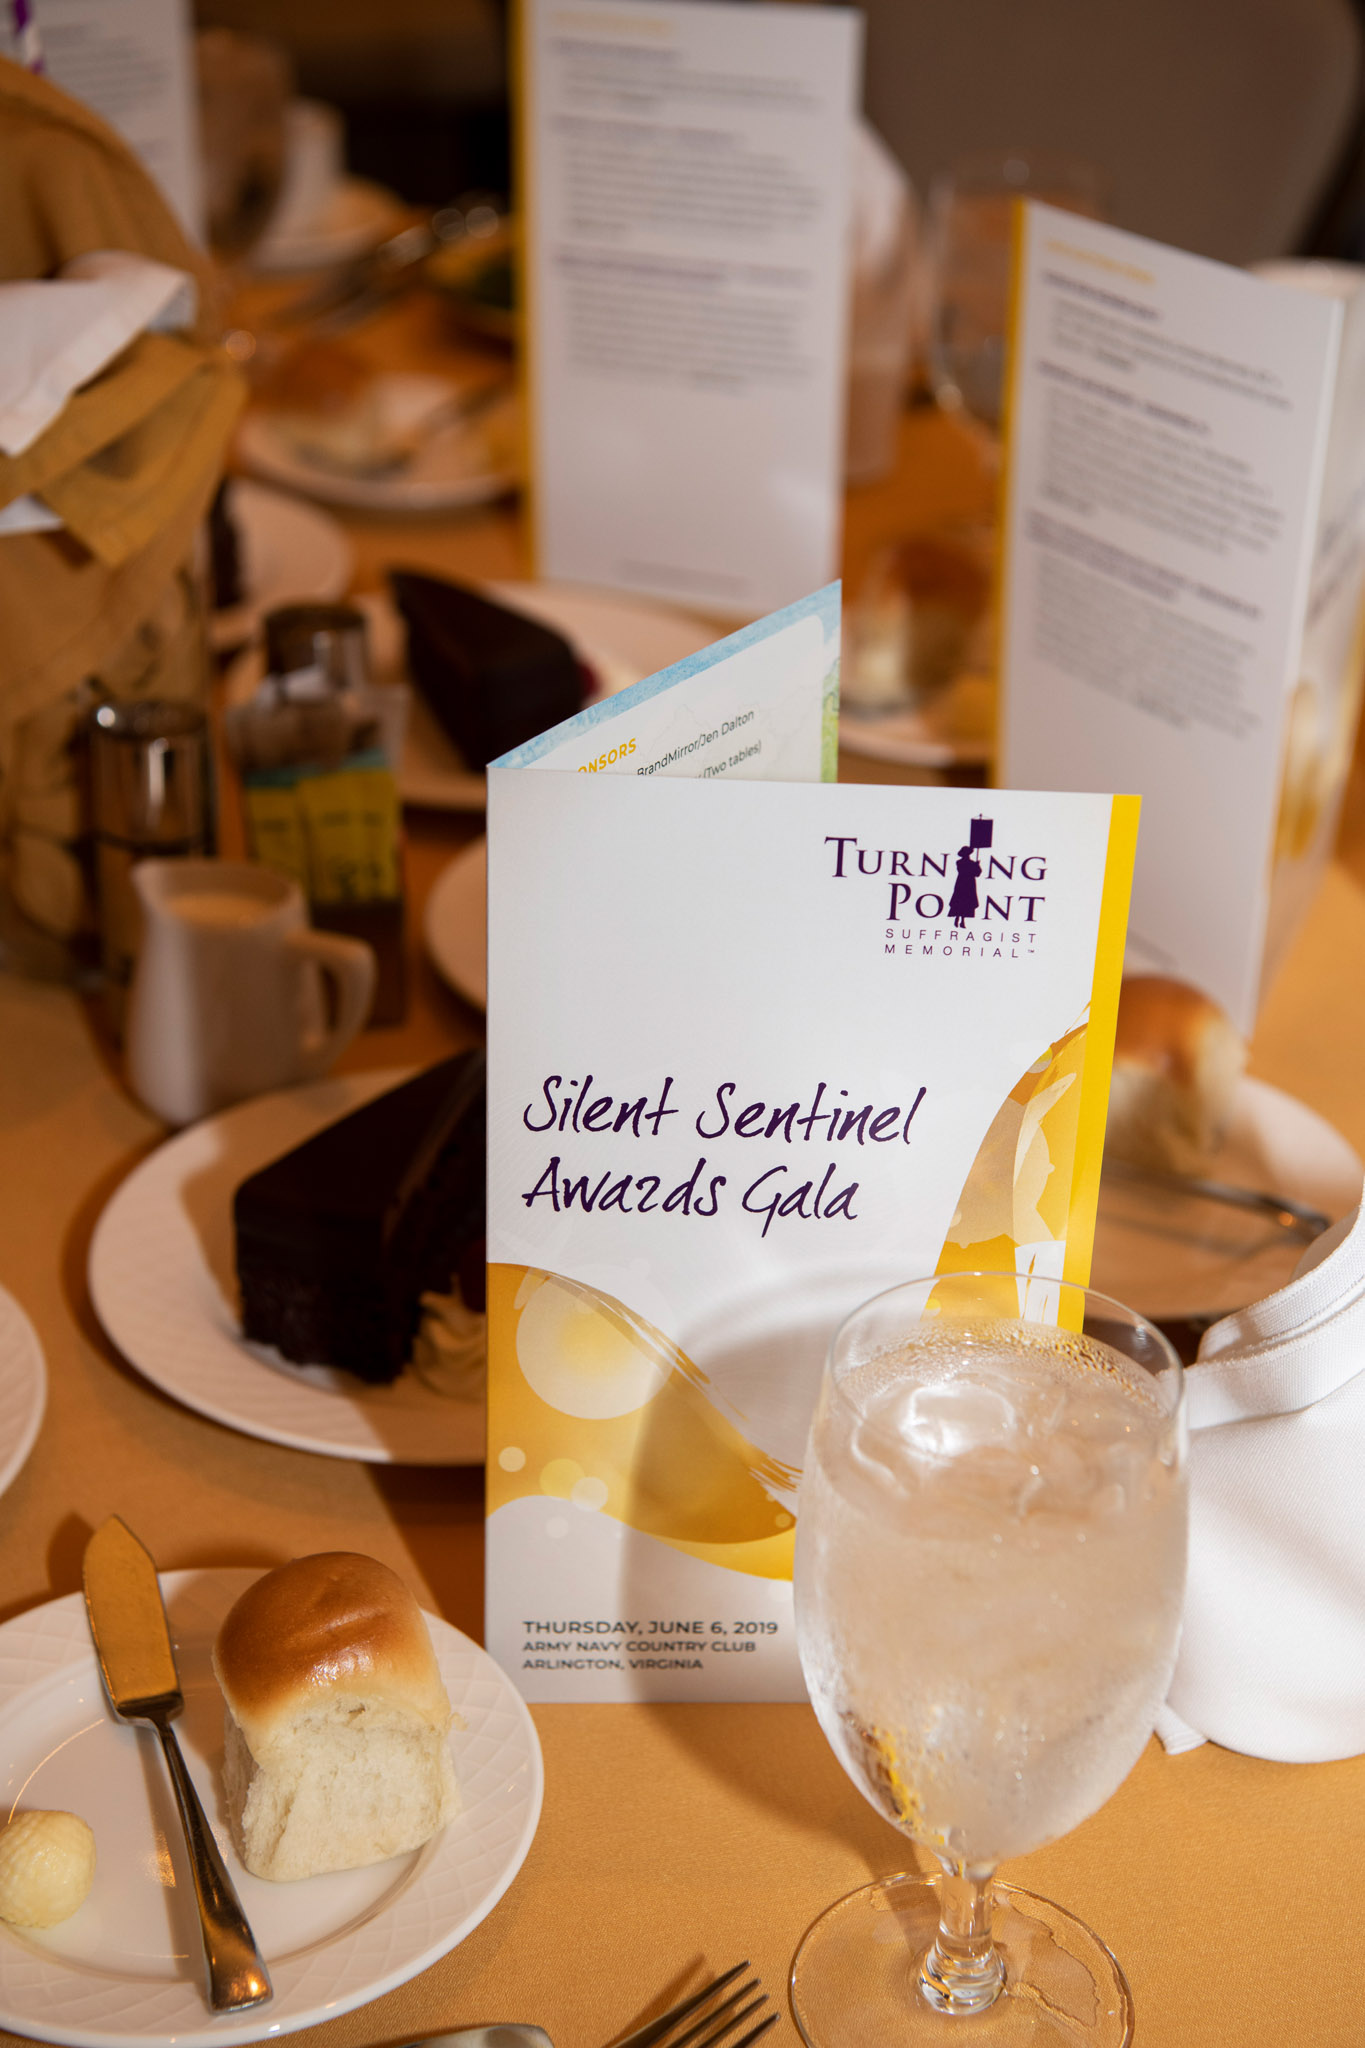 20190606-silent-sentinel-awards-gala-turning-point_023_48031603571_o